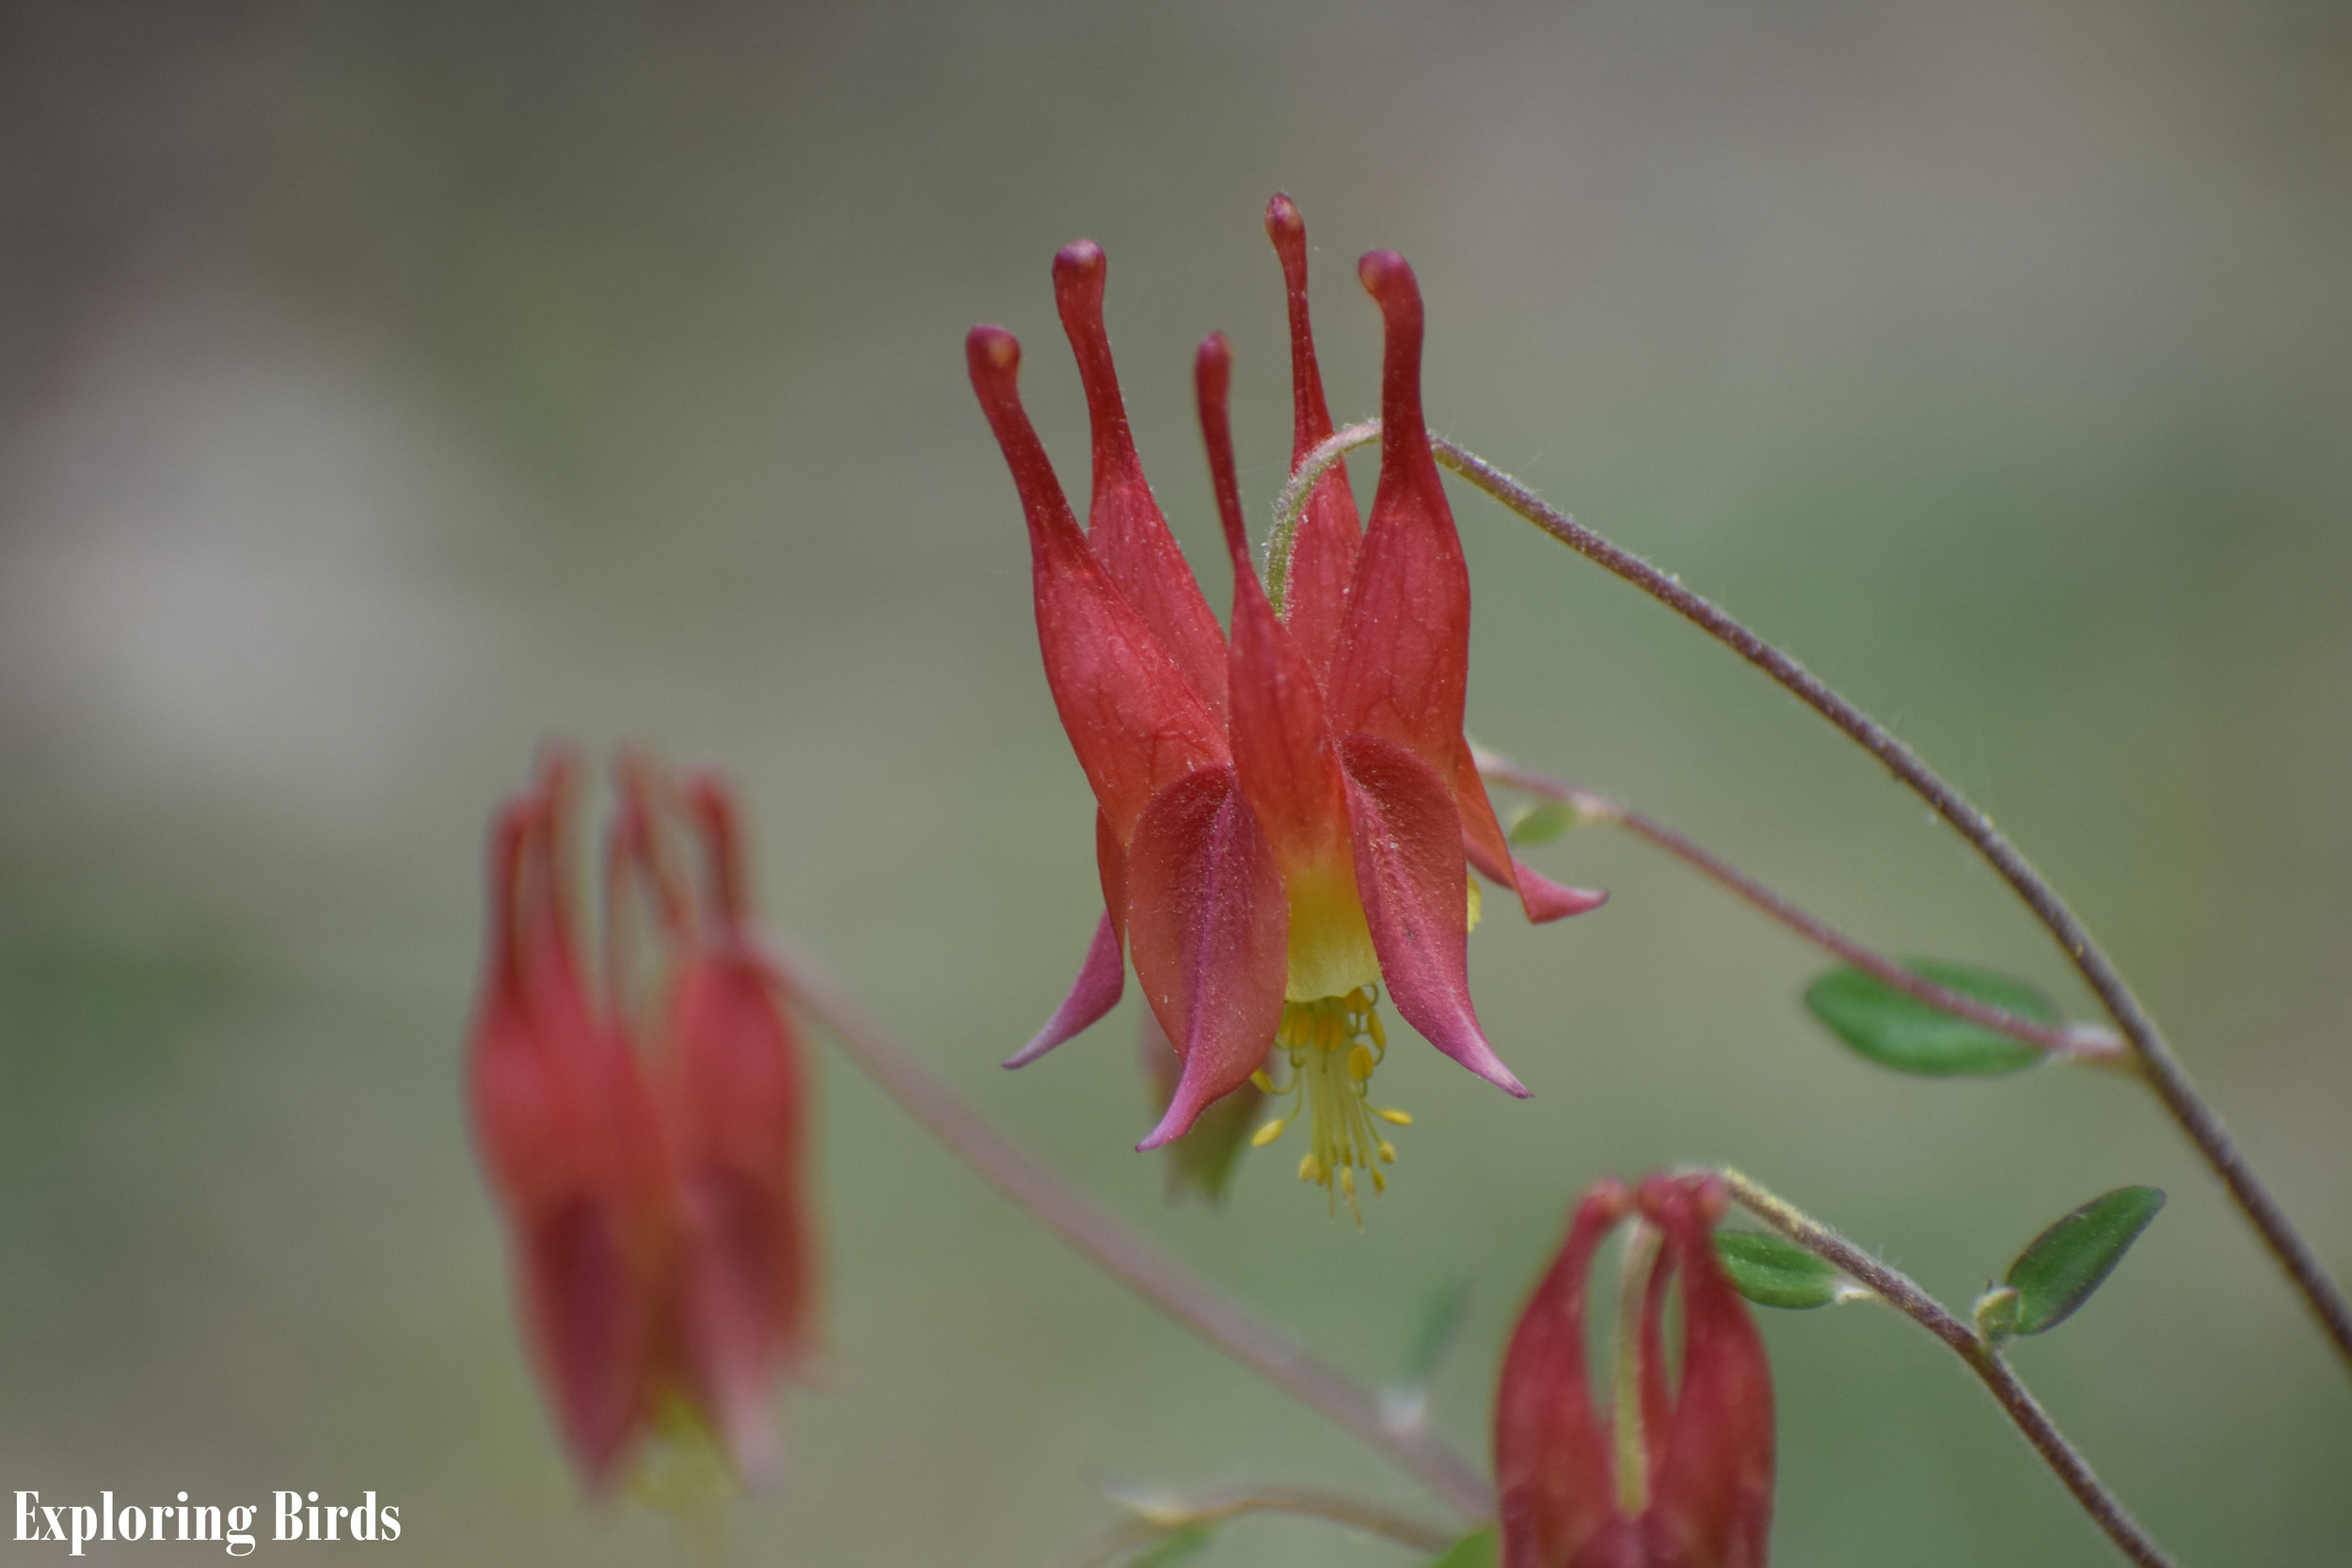 Red Columbine is a flower that attracts birds